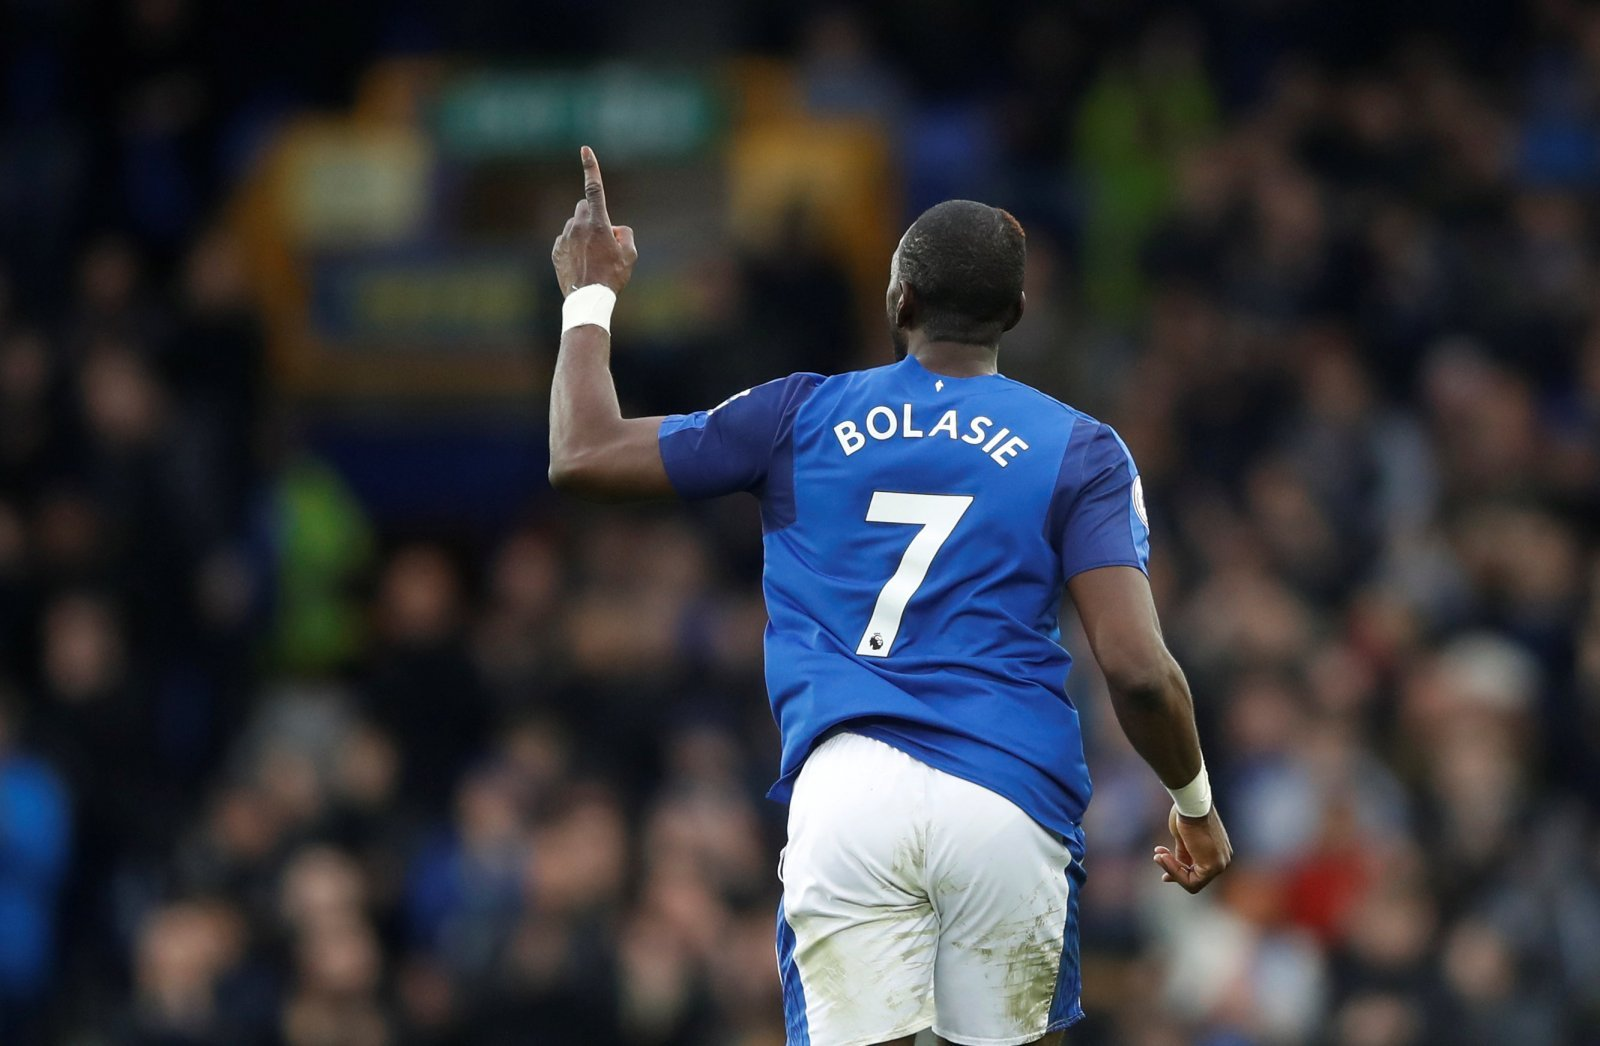 Yannick Bolasie can still salvage his Everton career under Marco Silva